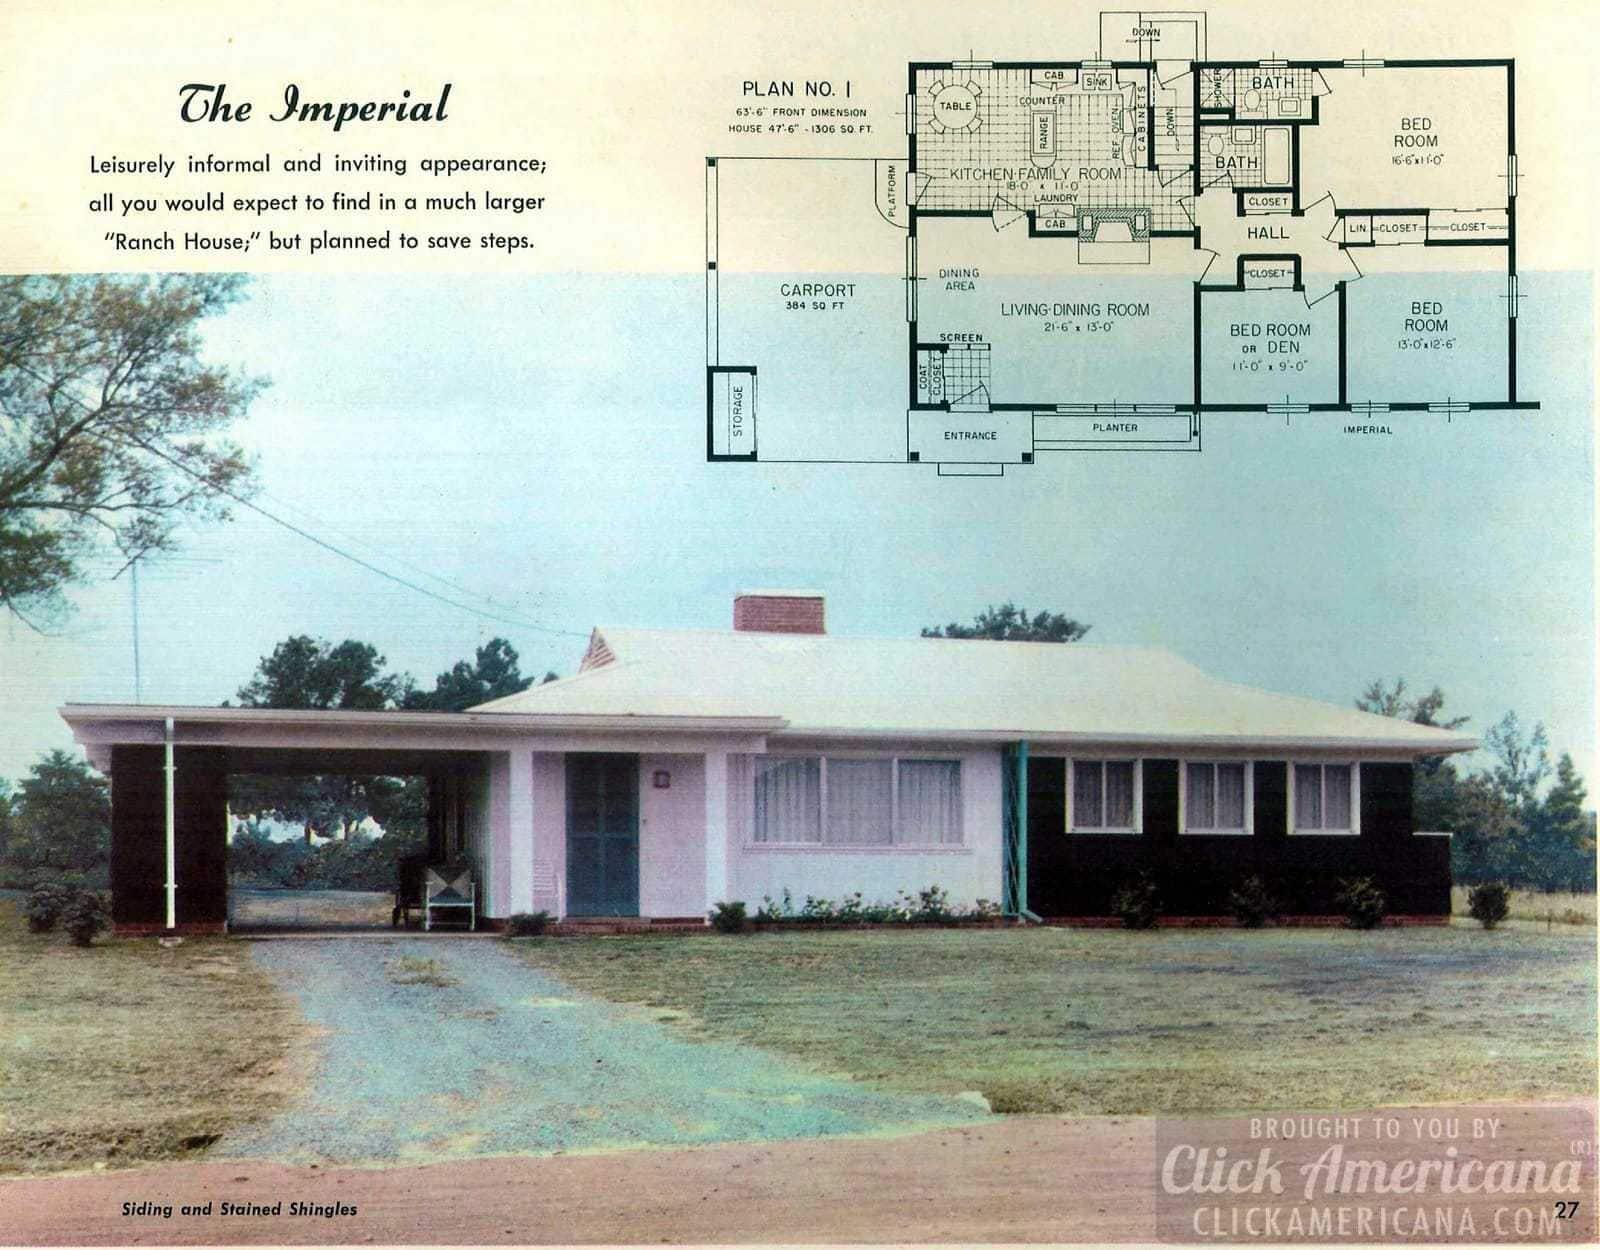 The Imperial: House design plans from the '50s